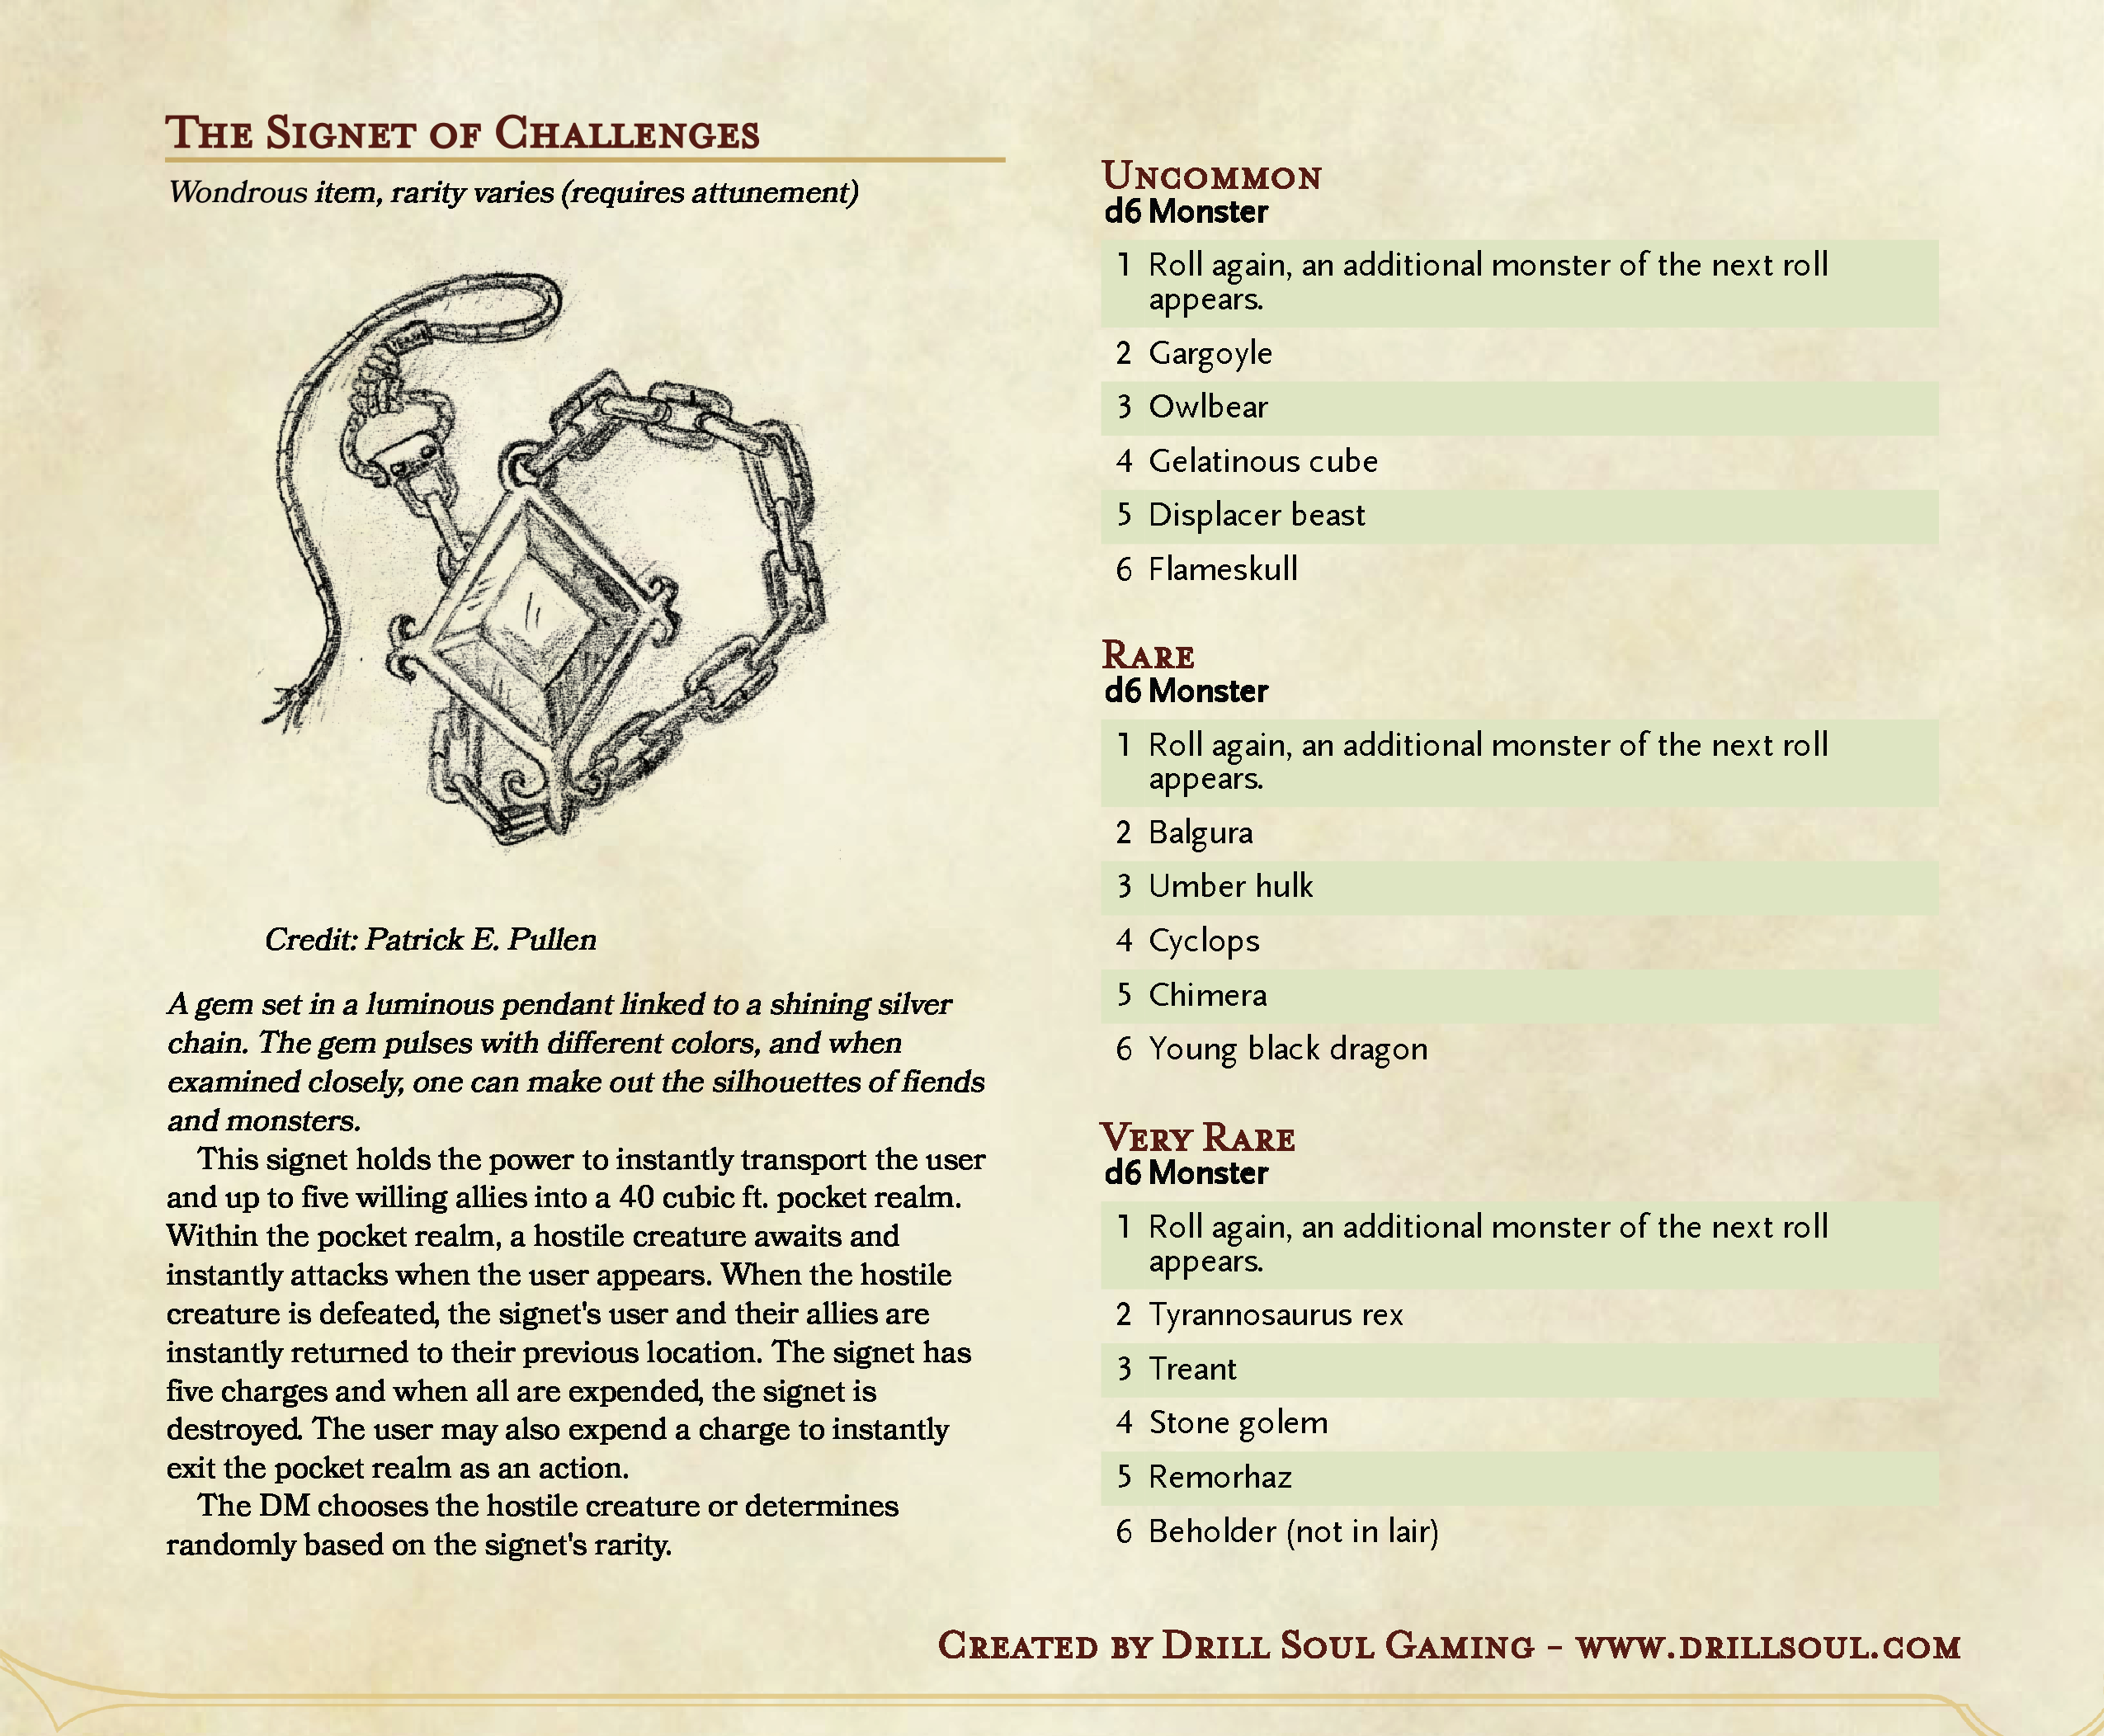 dungeons and dragons homebrew signet of challenges